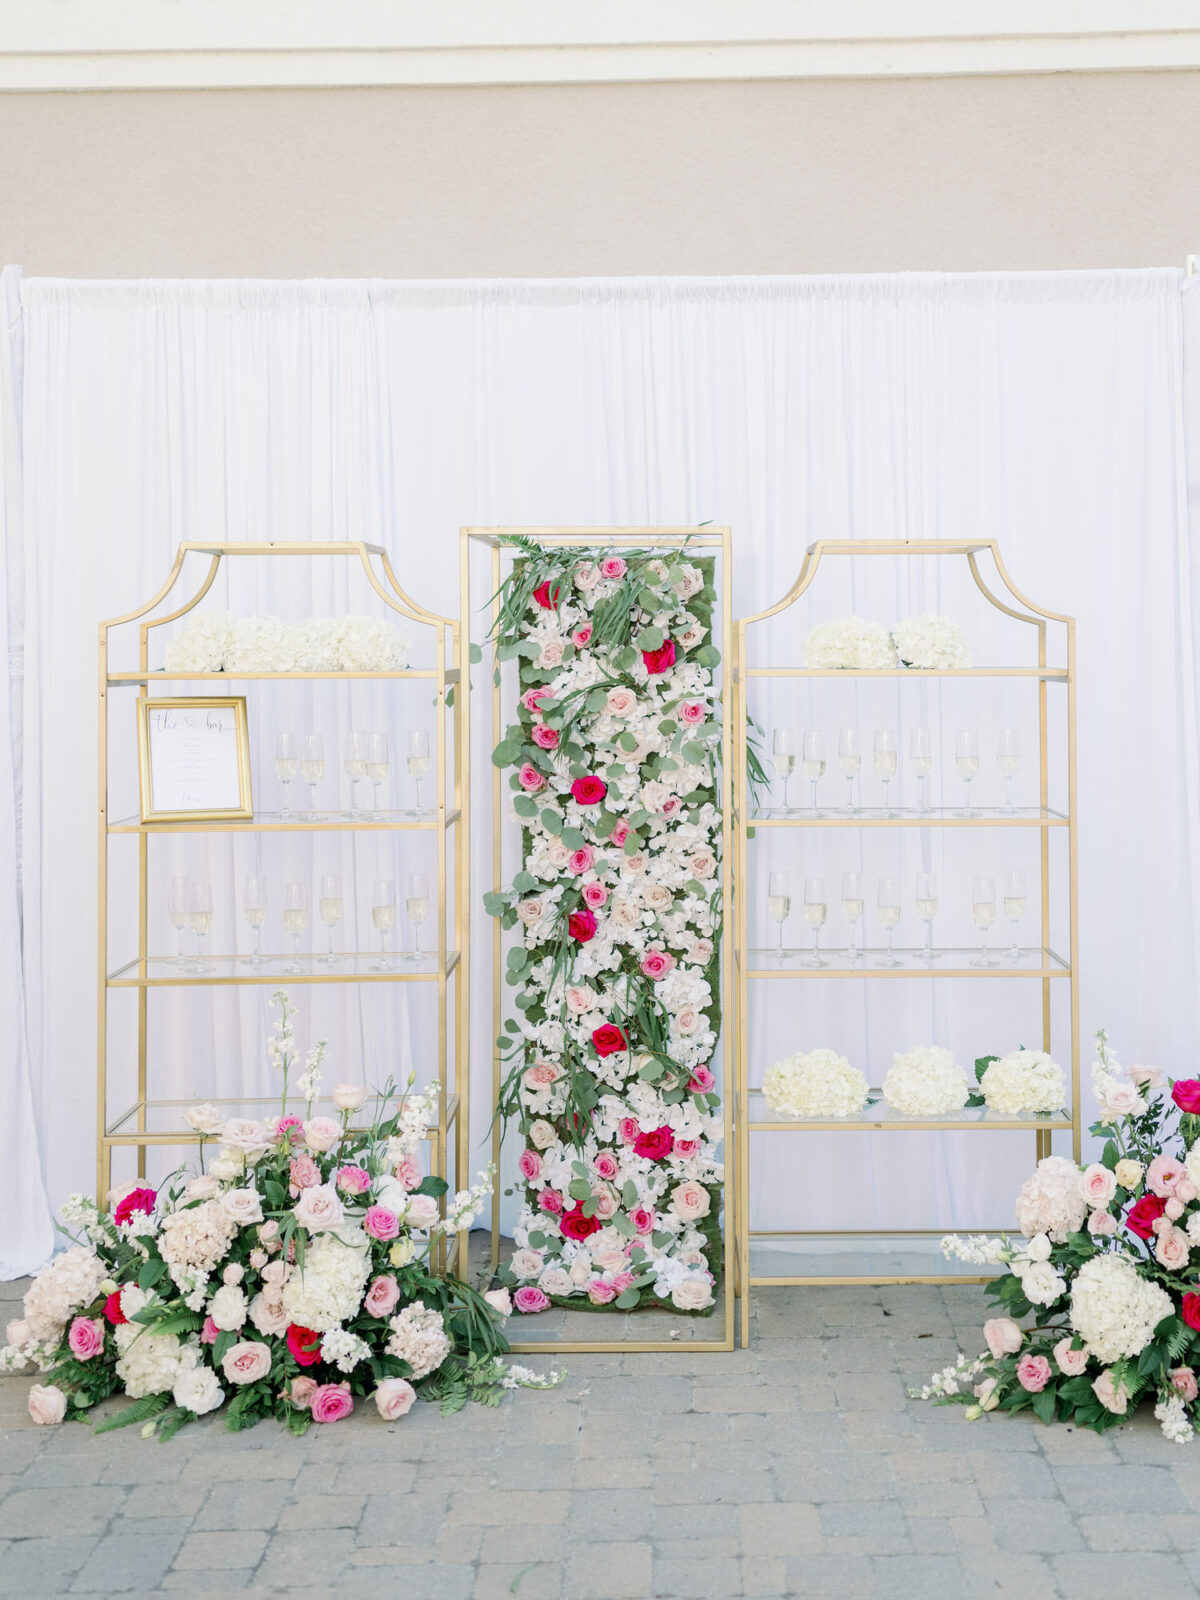 Wedding champagne display for wedding reception - Peony Park Photography